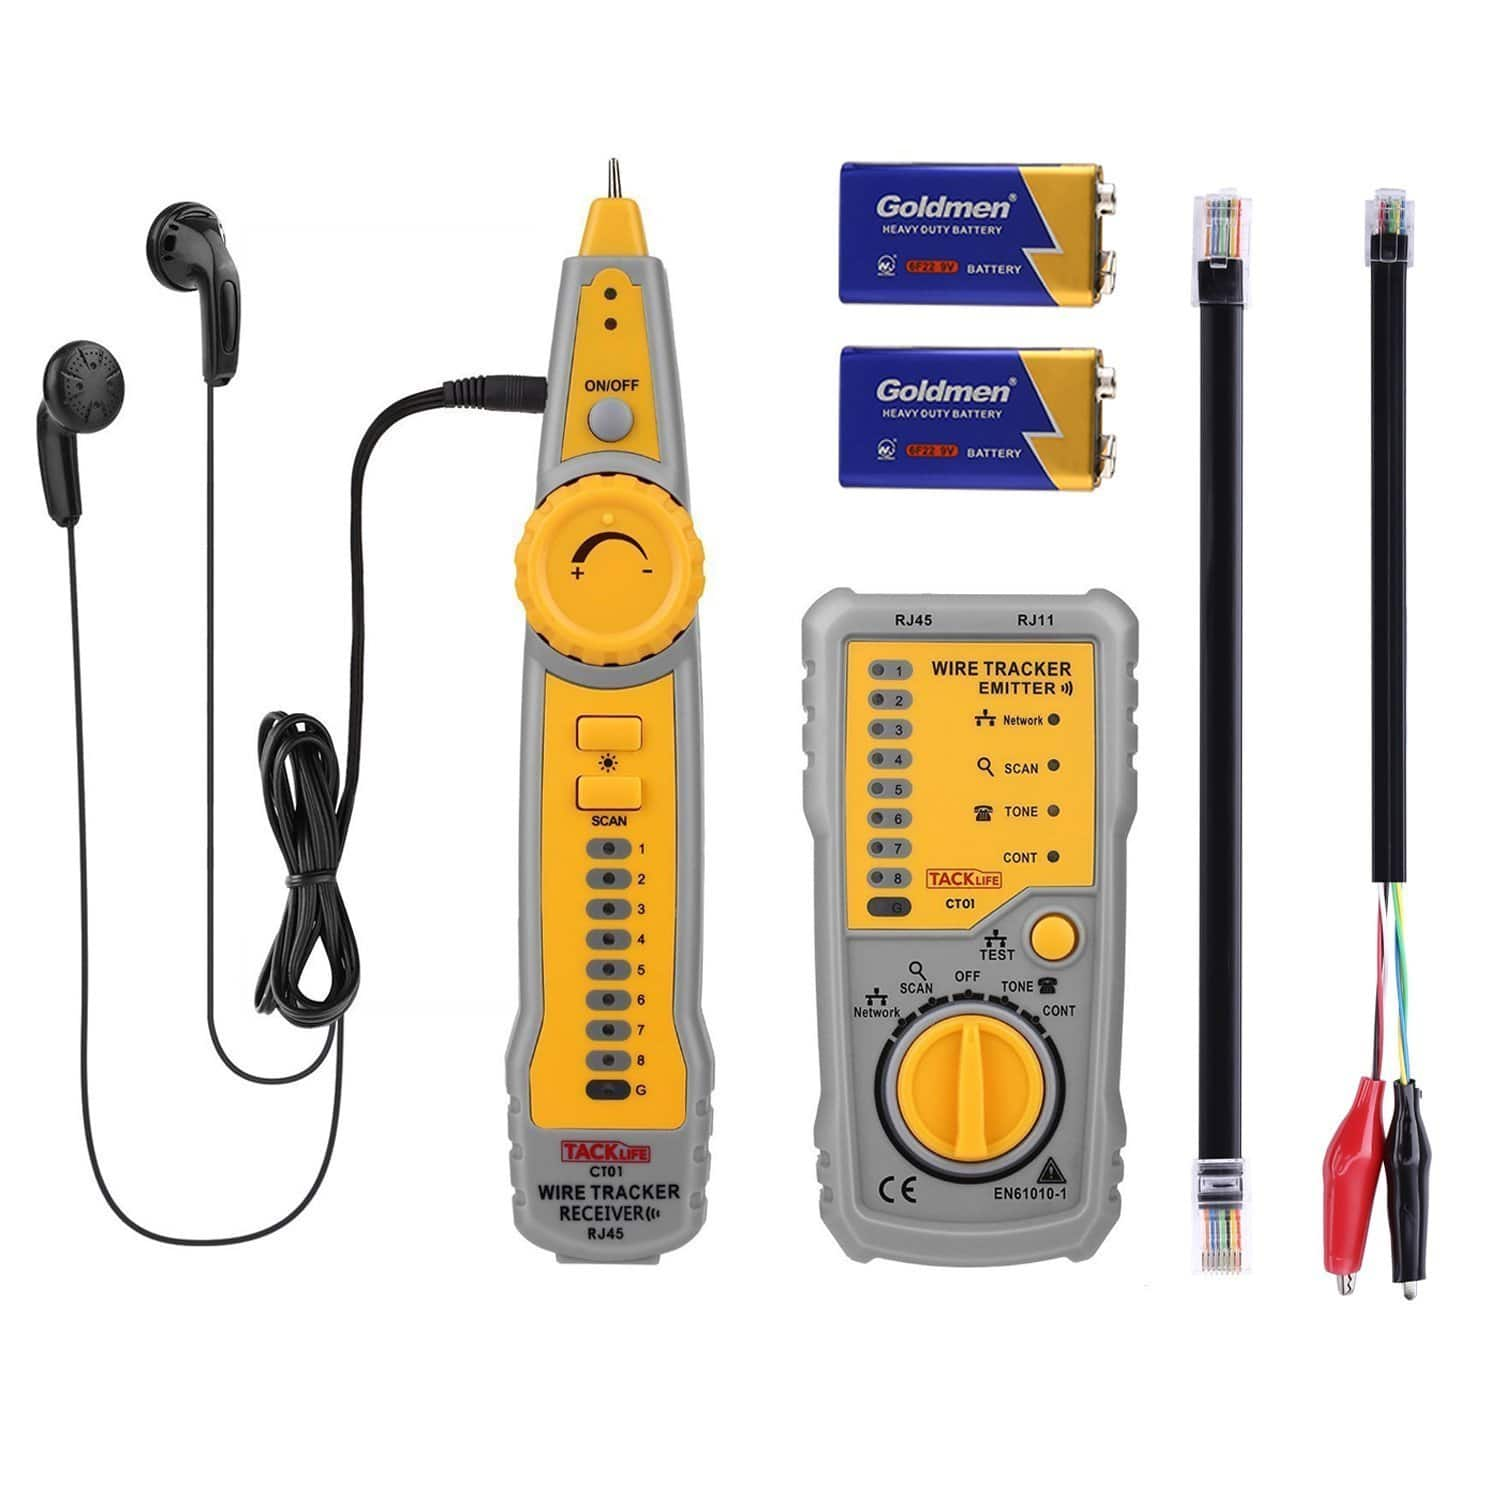 Tack Life Ct01 Multifunctional Wire Tracer Cable Tester Featured Electrical Circuit Tracers And Testers At Test Equipment Deal Image